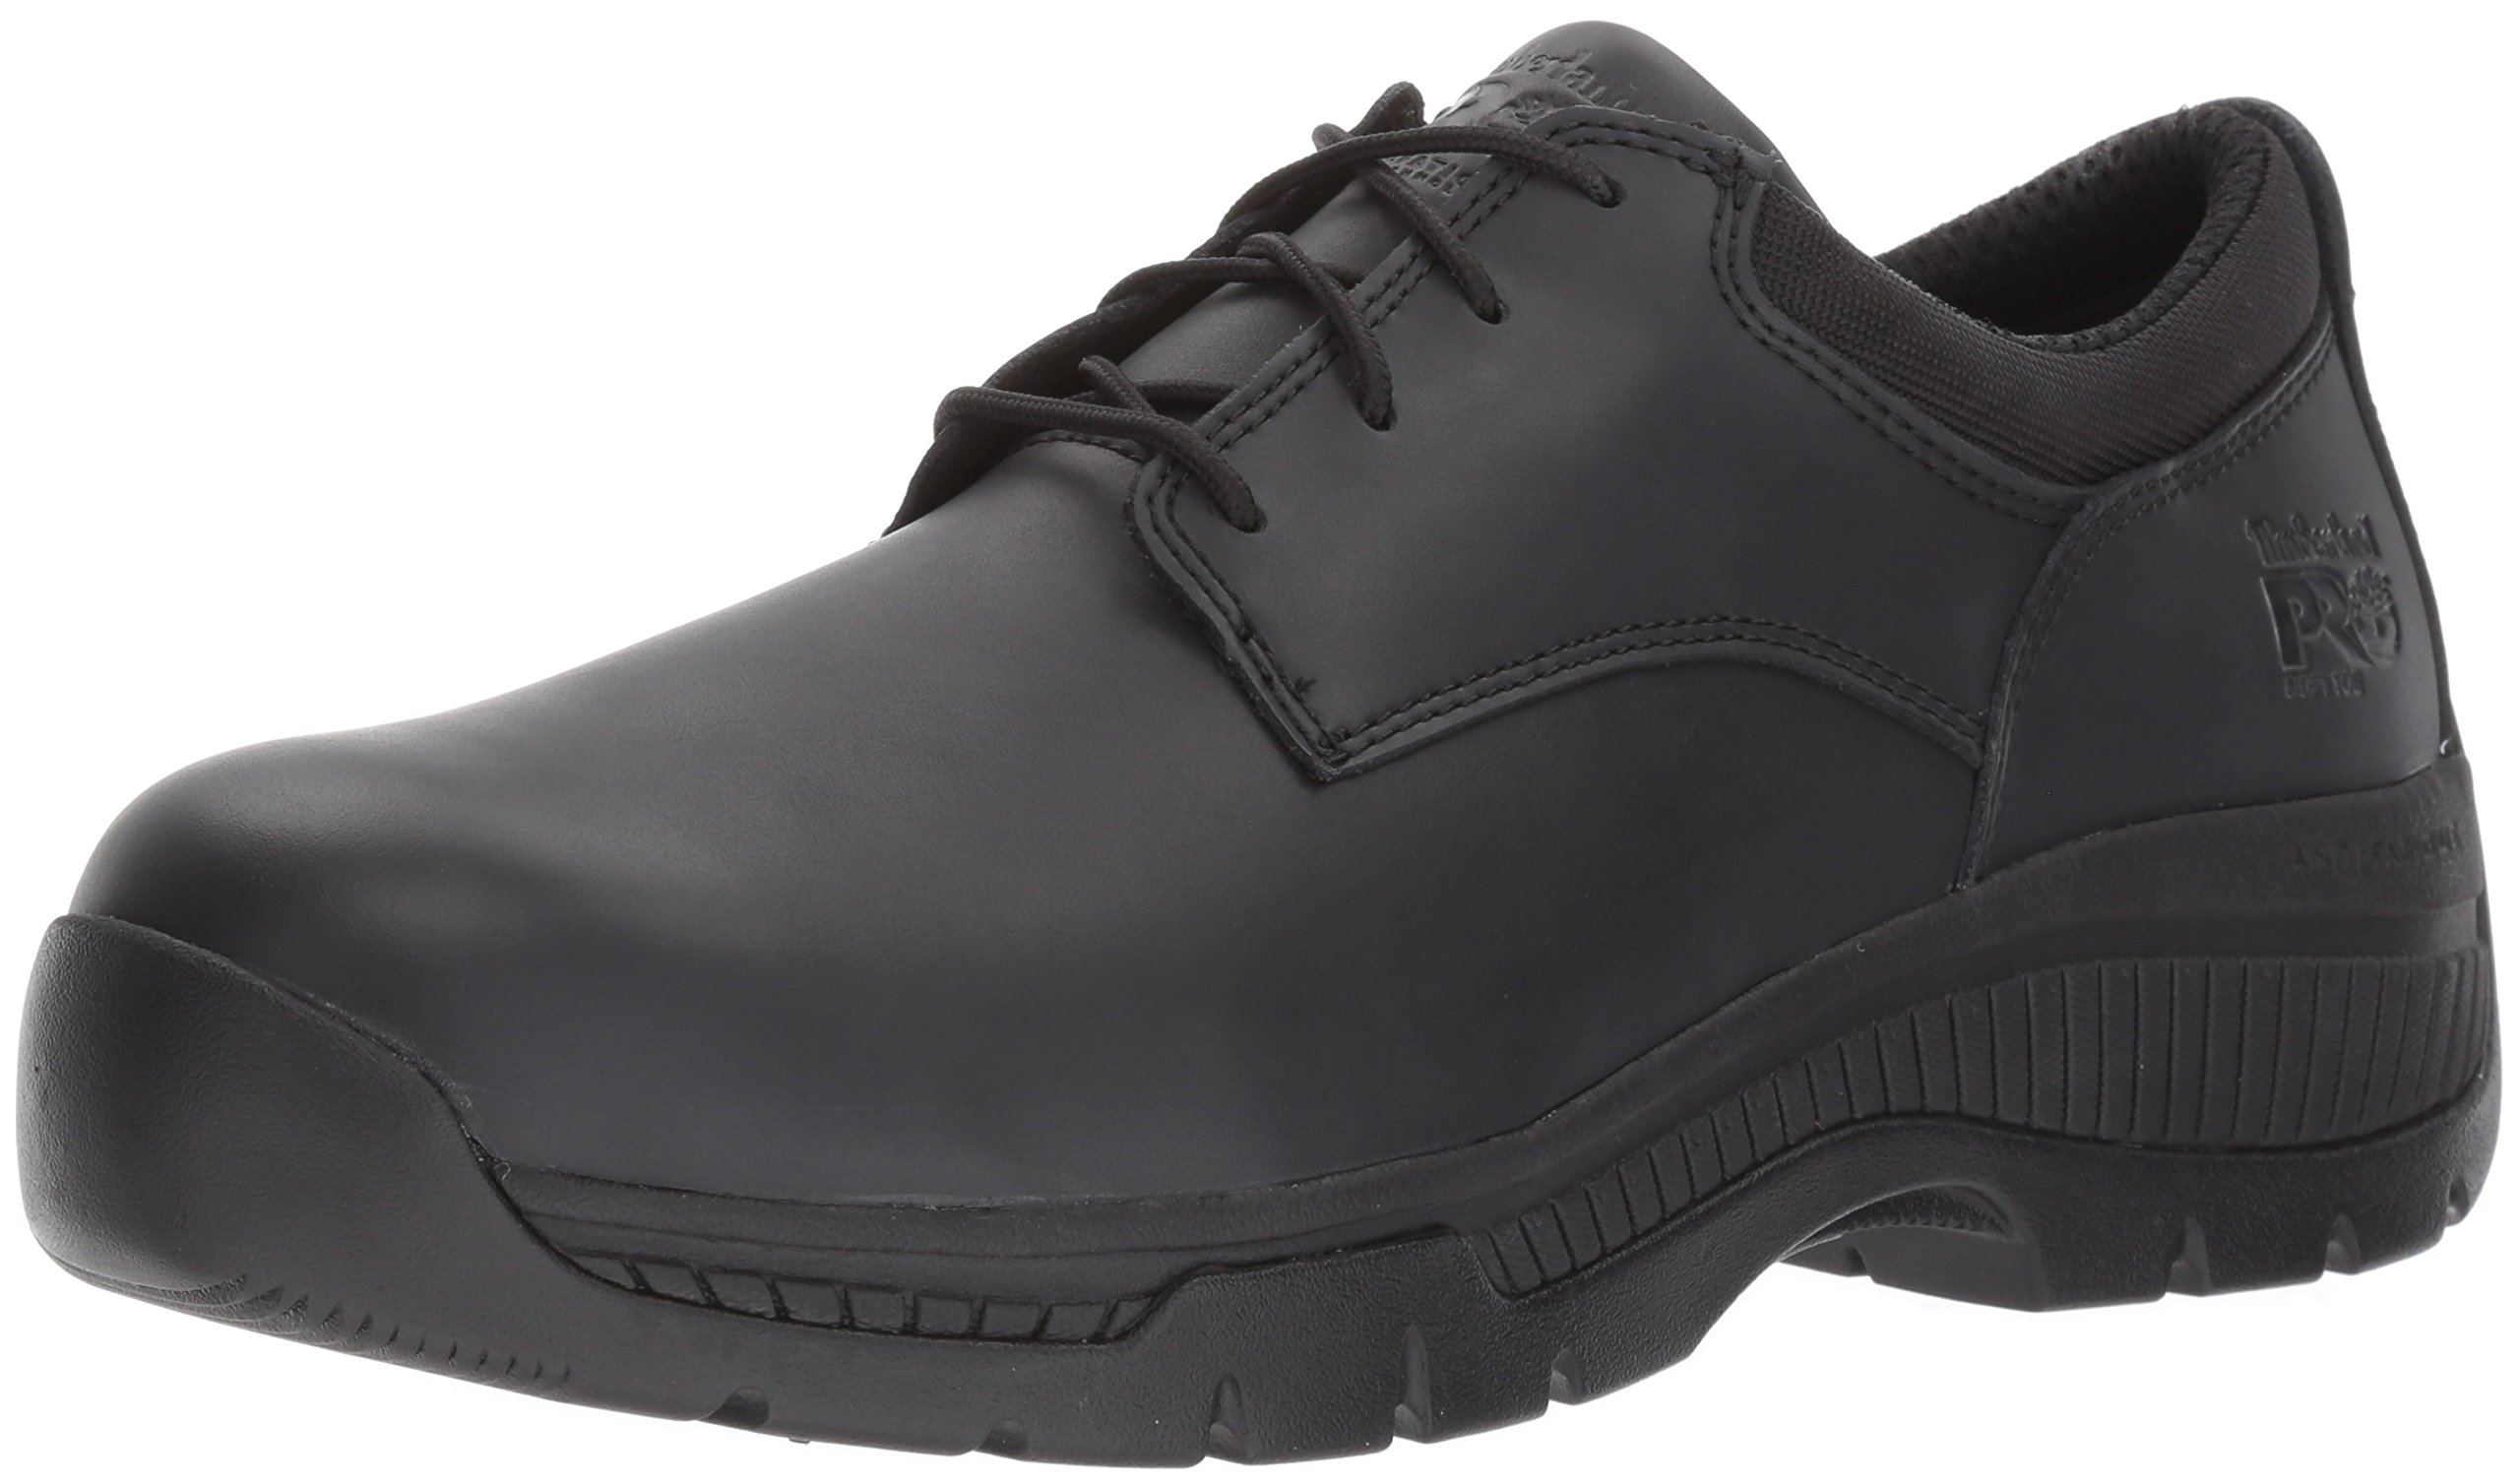 Timberland PRO Men's Valor Duty Soft Toe Oxford Military Tactical Boot, Black Smooth Leather, 13 M US